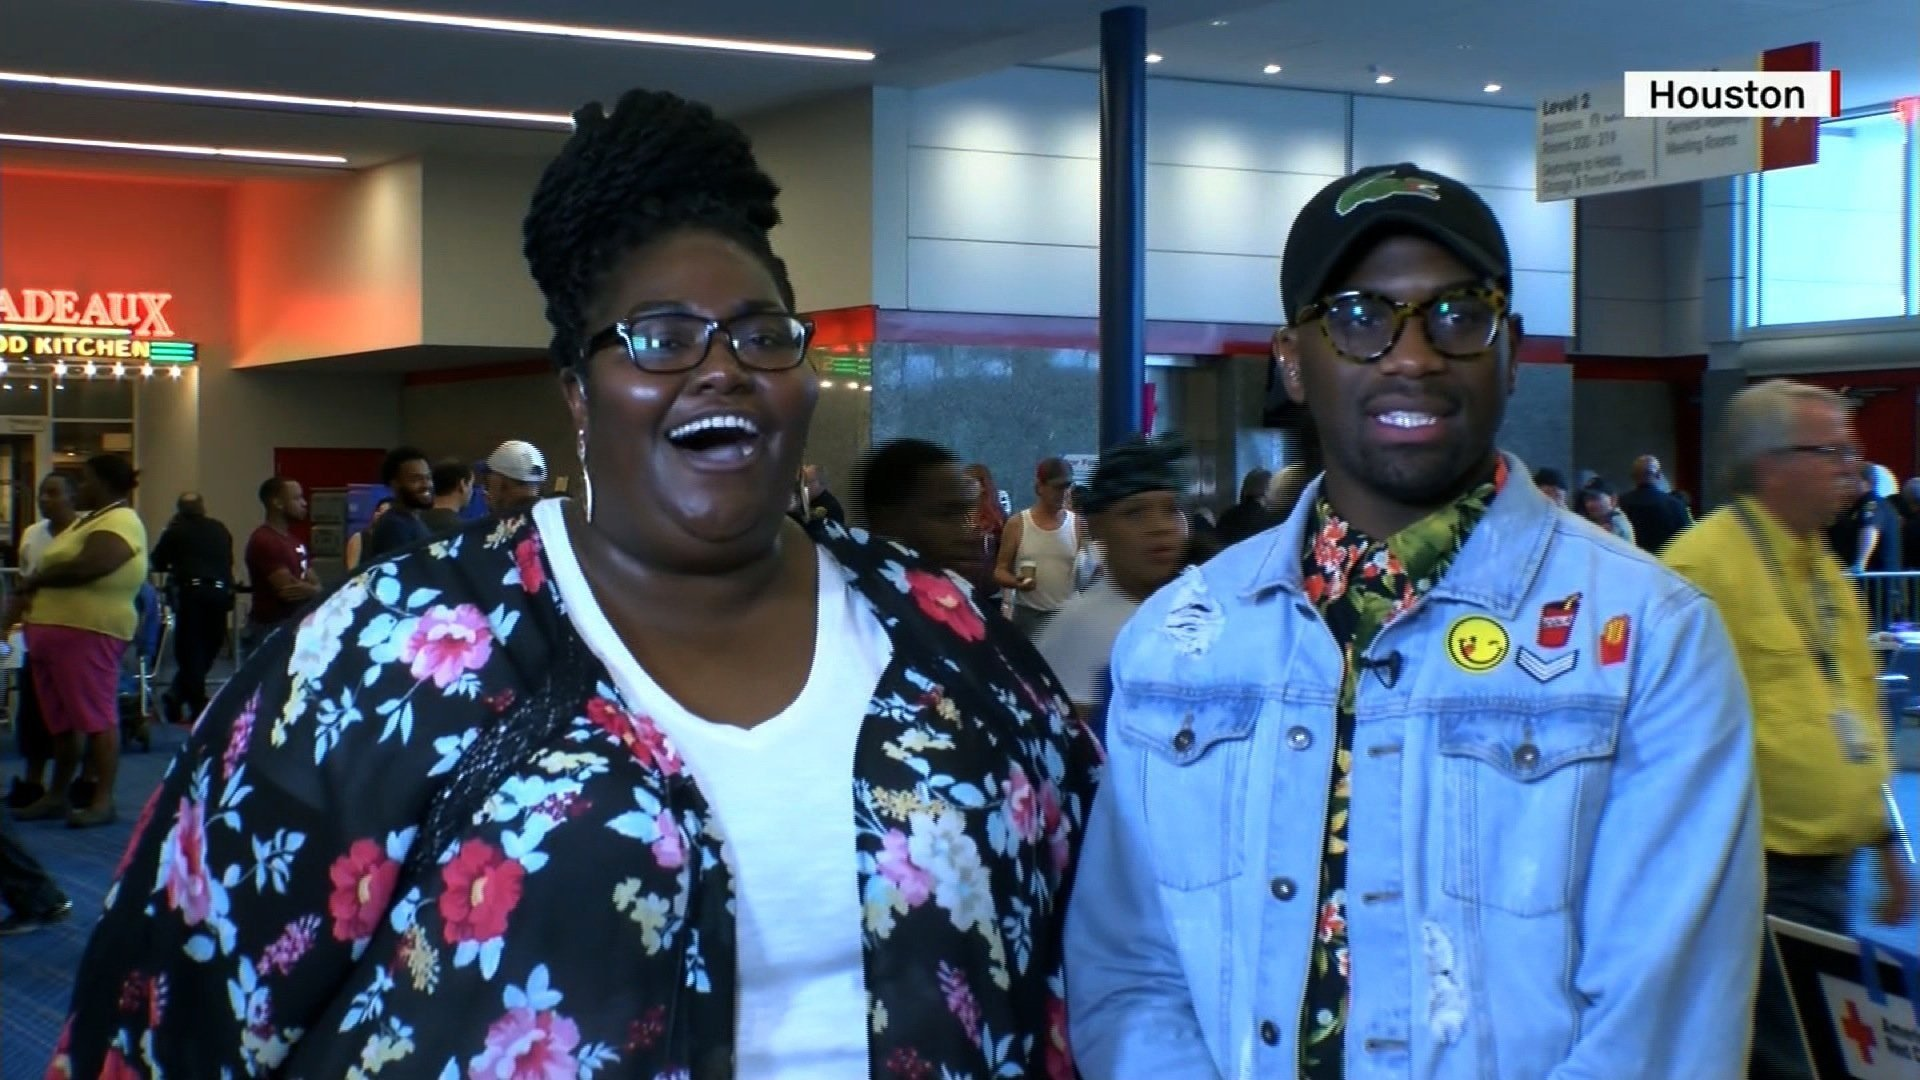 In a now-viral video, Victoria White and Marquist Taylor gave a passionate, gospel performance at a Texas shelter for Harvey evacuees. (Source: CNN)